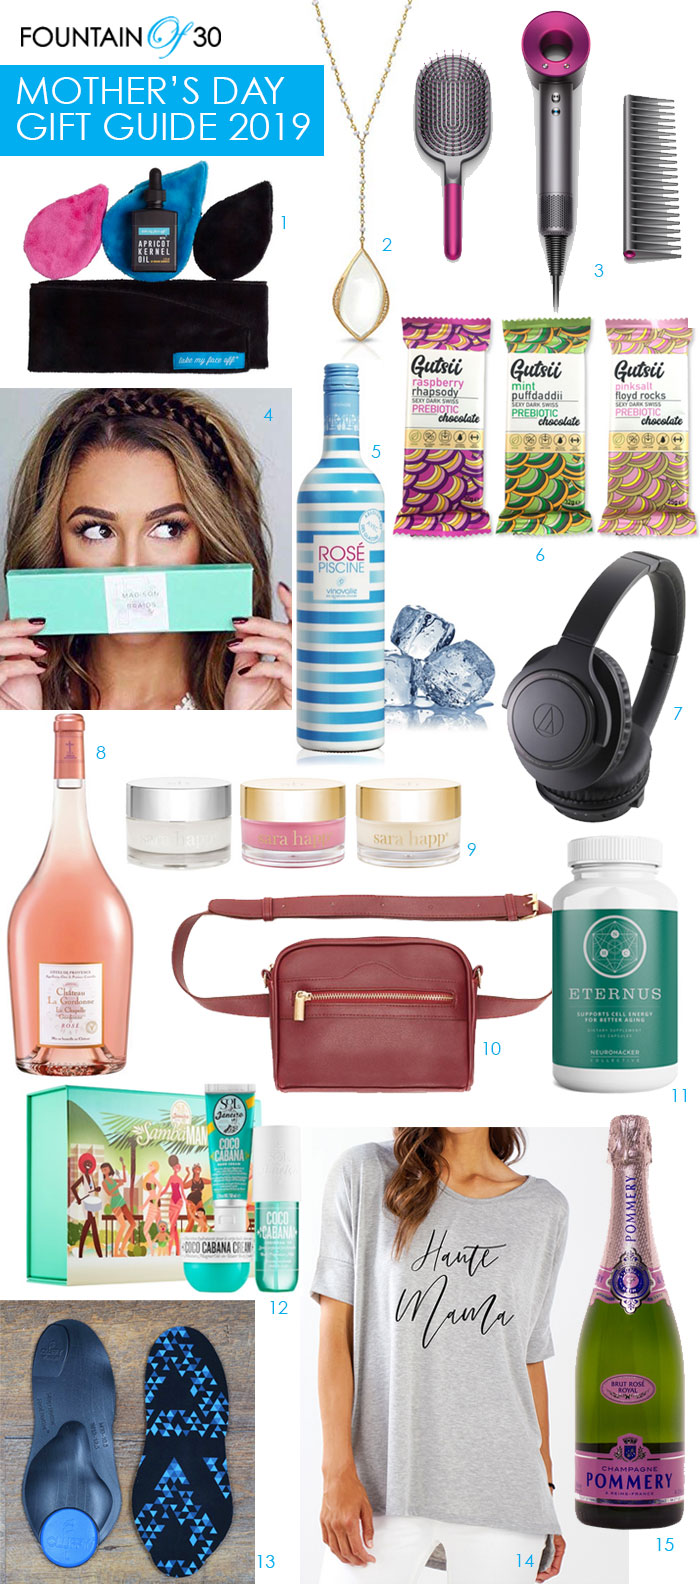 Unique Mother's Day Gift Ideas gifts for her fountainof30